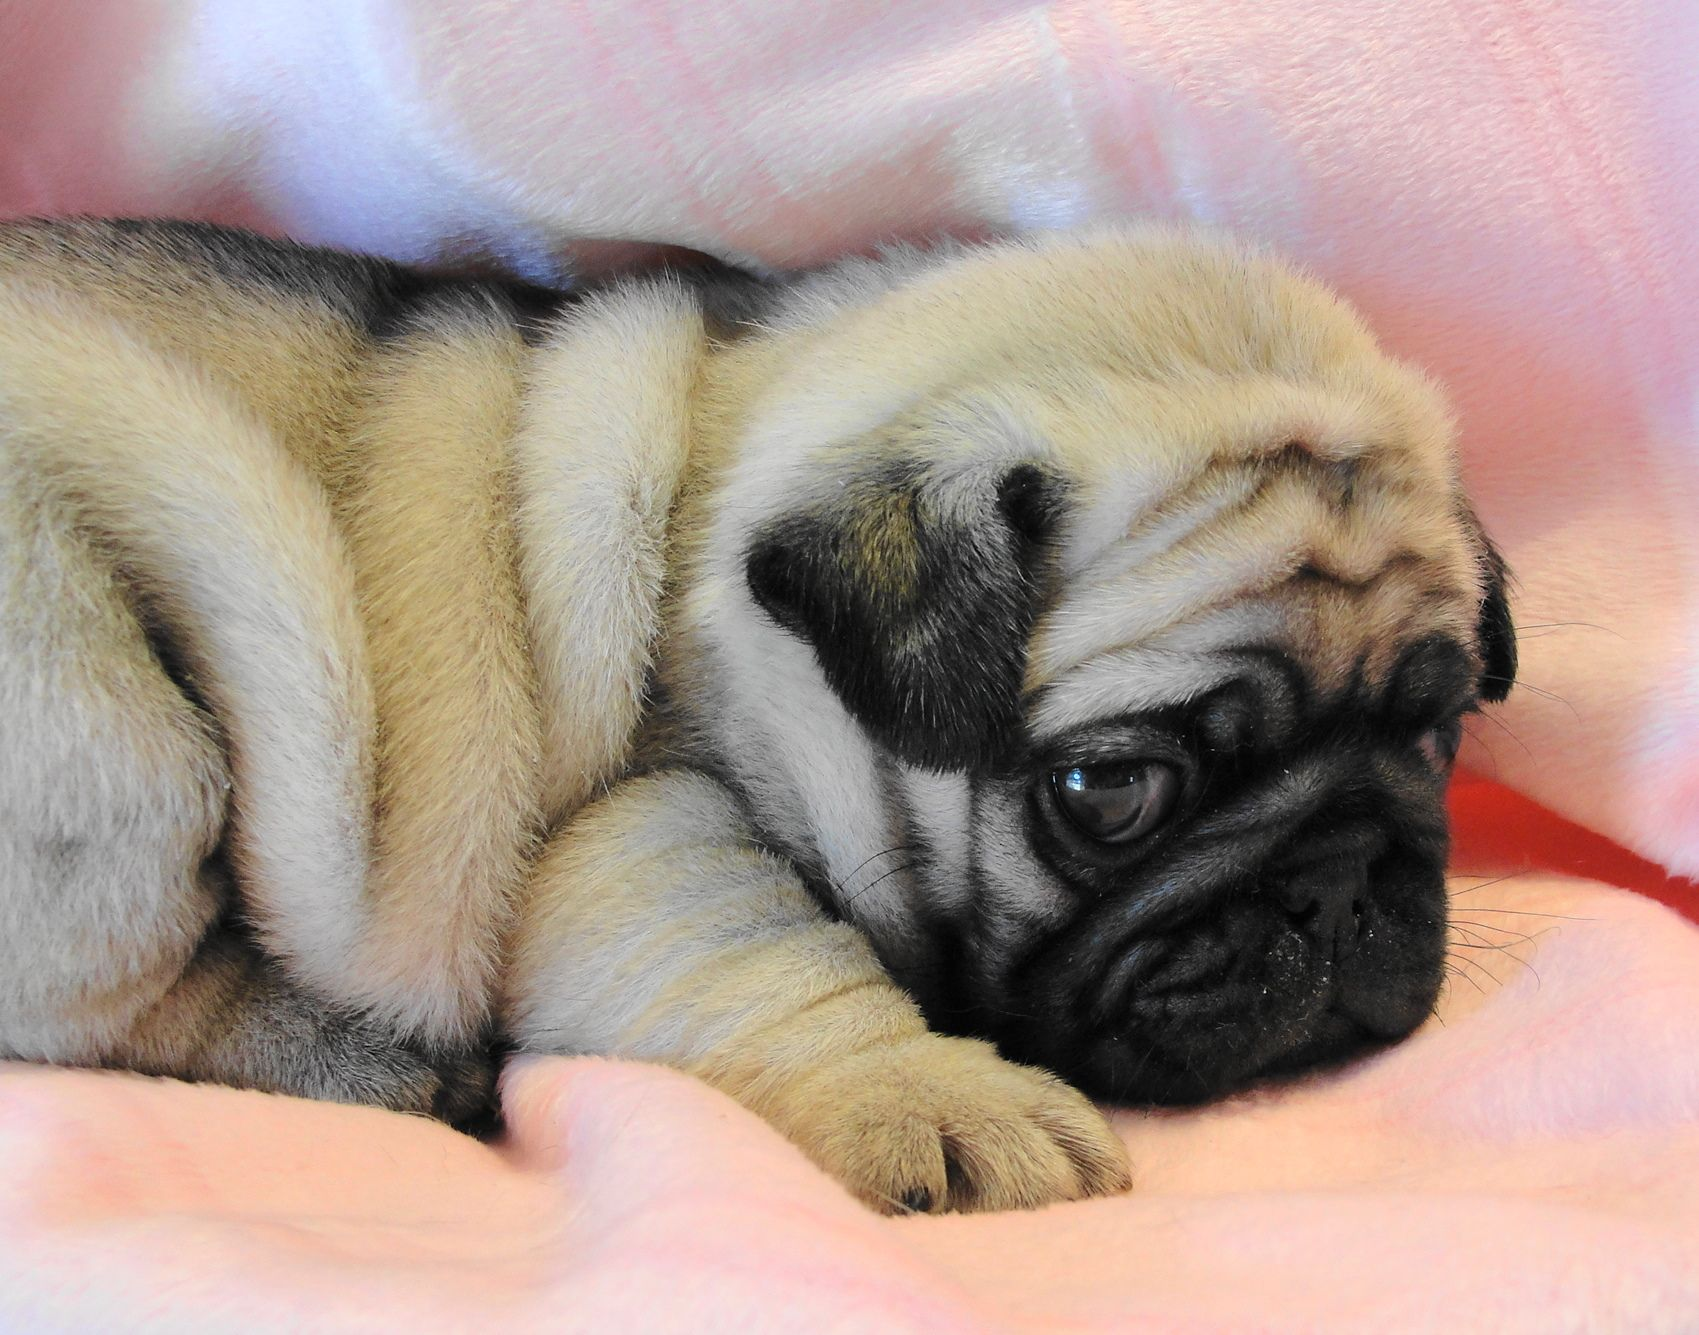 Pug Wallpaper Screensaver Background Cute Pug Puppy Baby Pugs